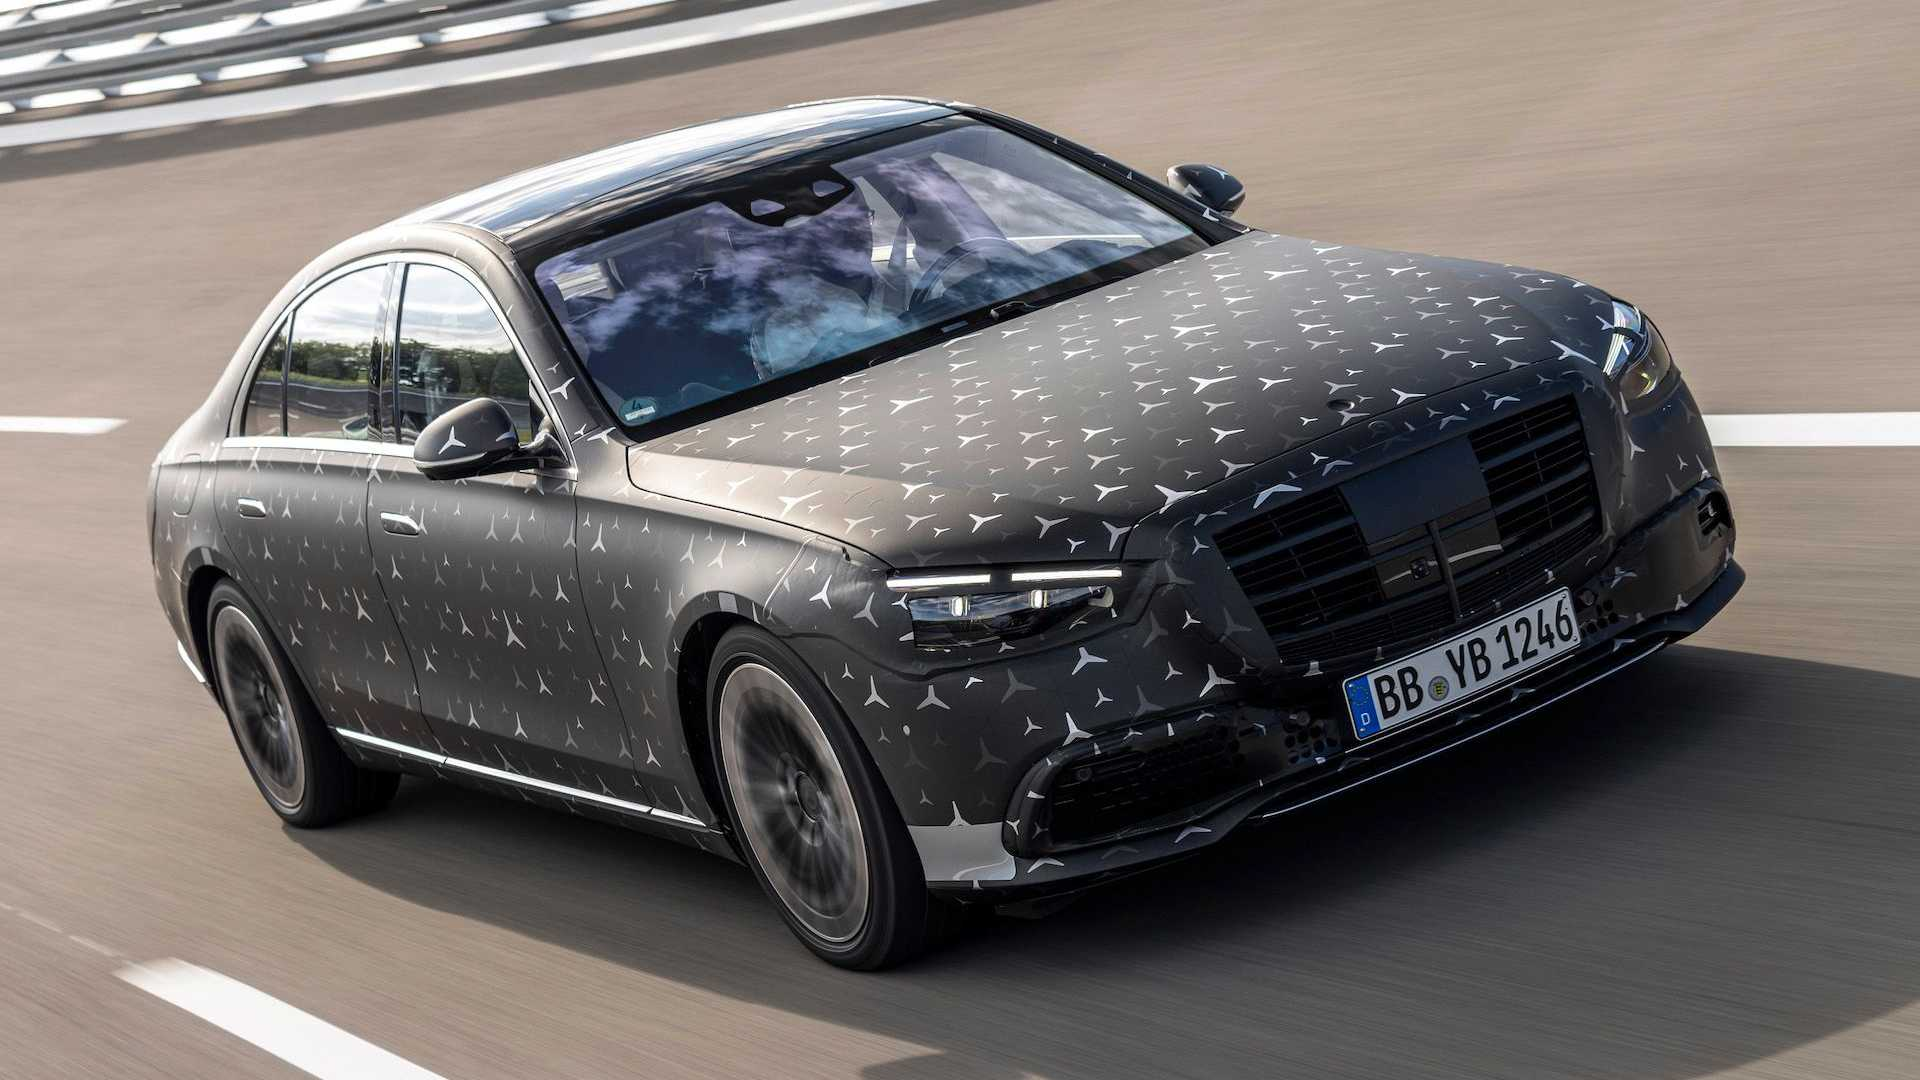 New Mercedes-AMG S63 To Be A Plug-In Hybrid With Around 800 HP? - Motor1